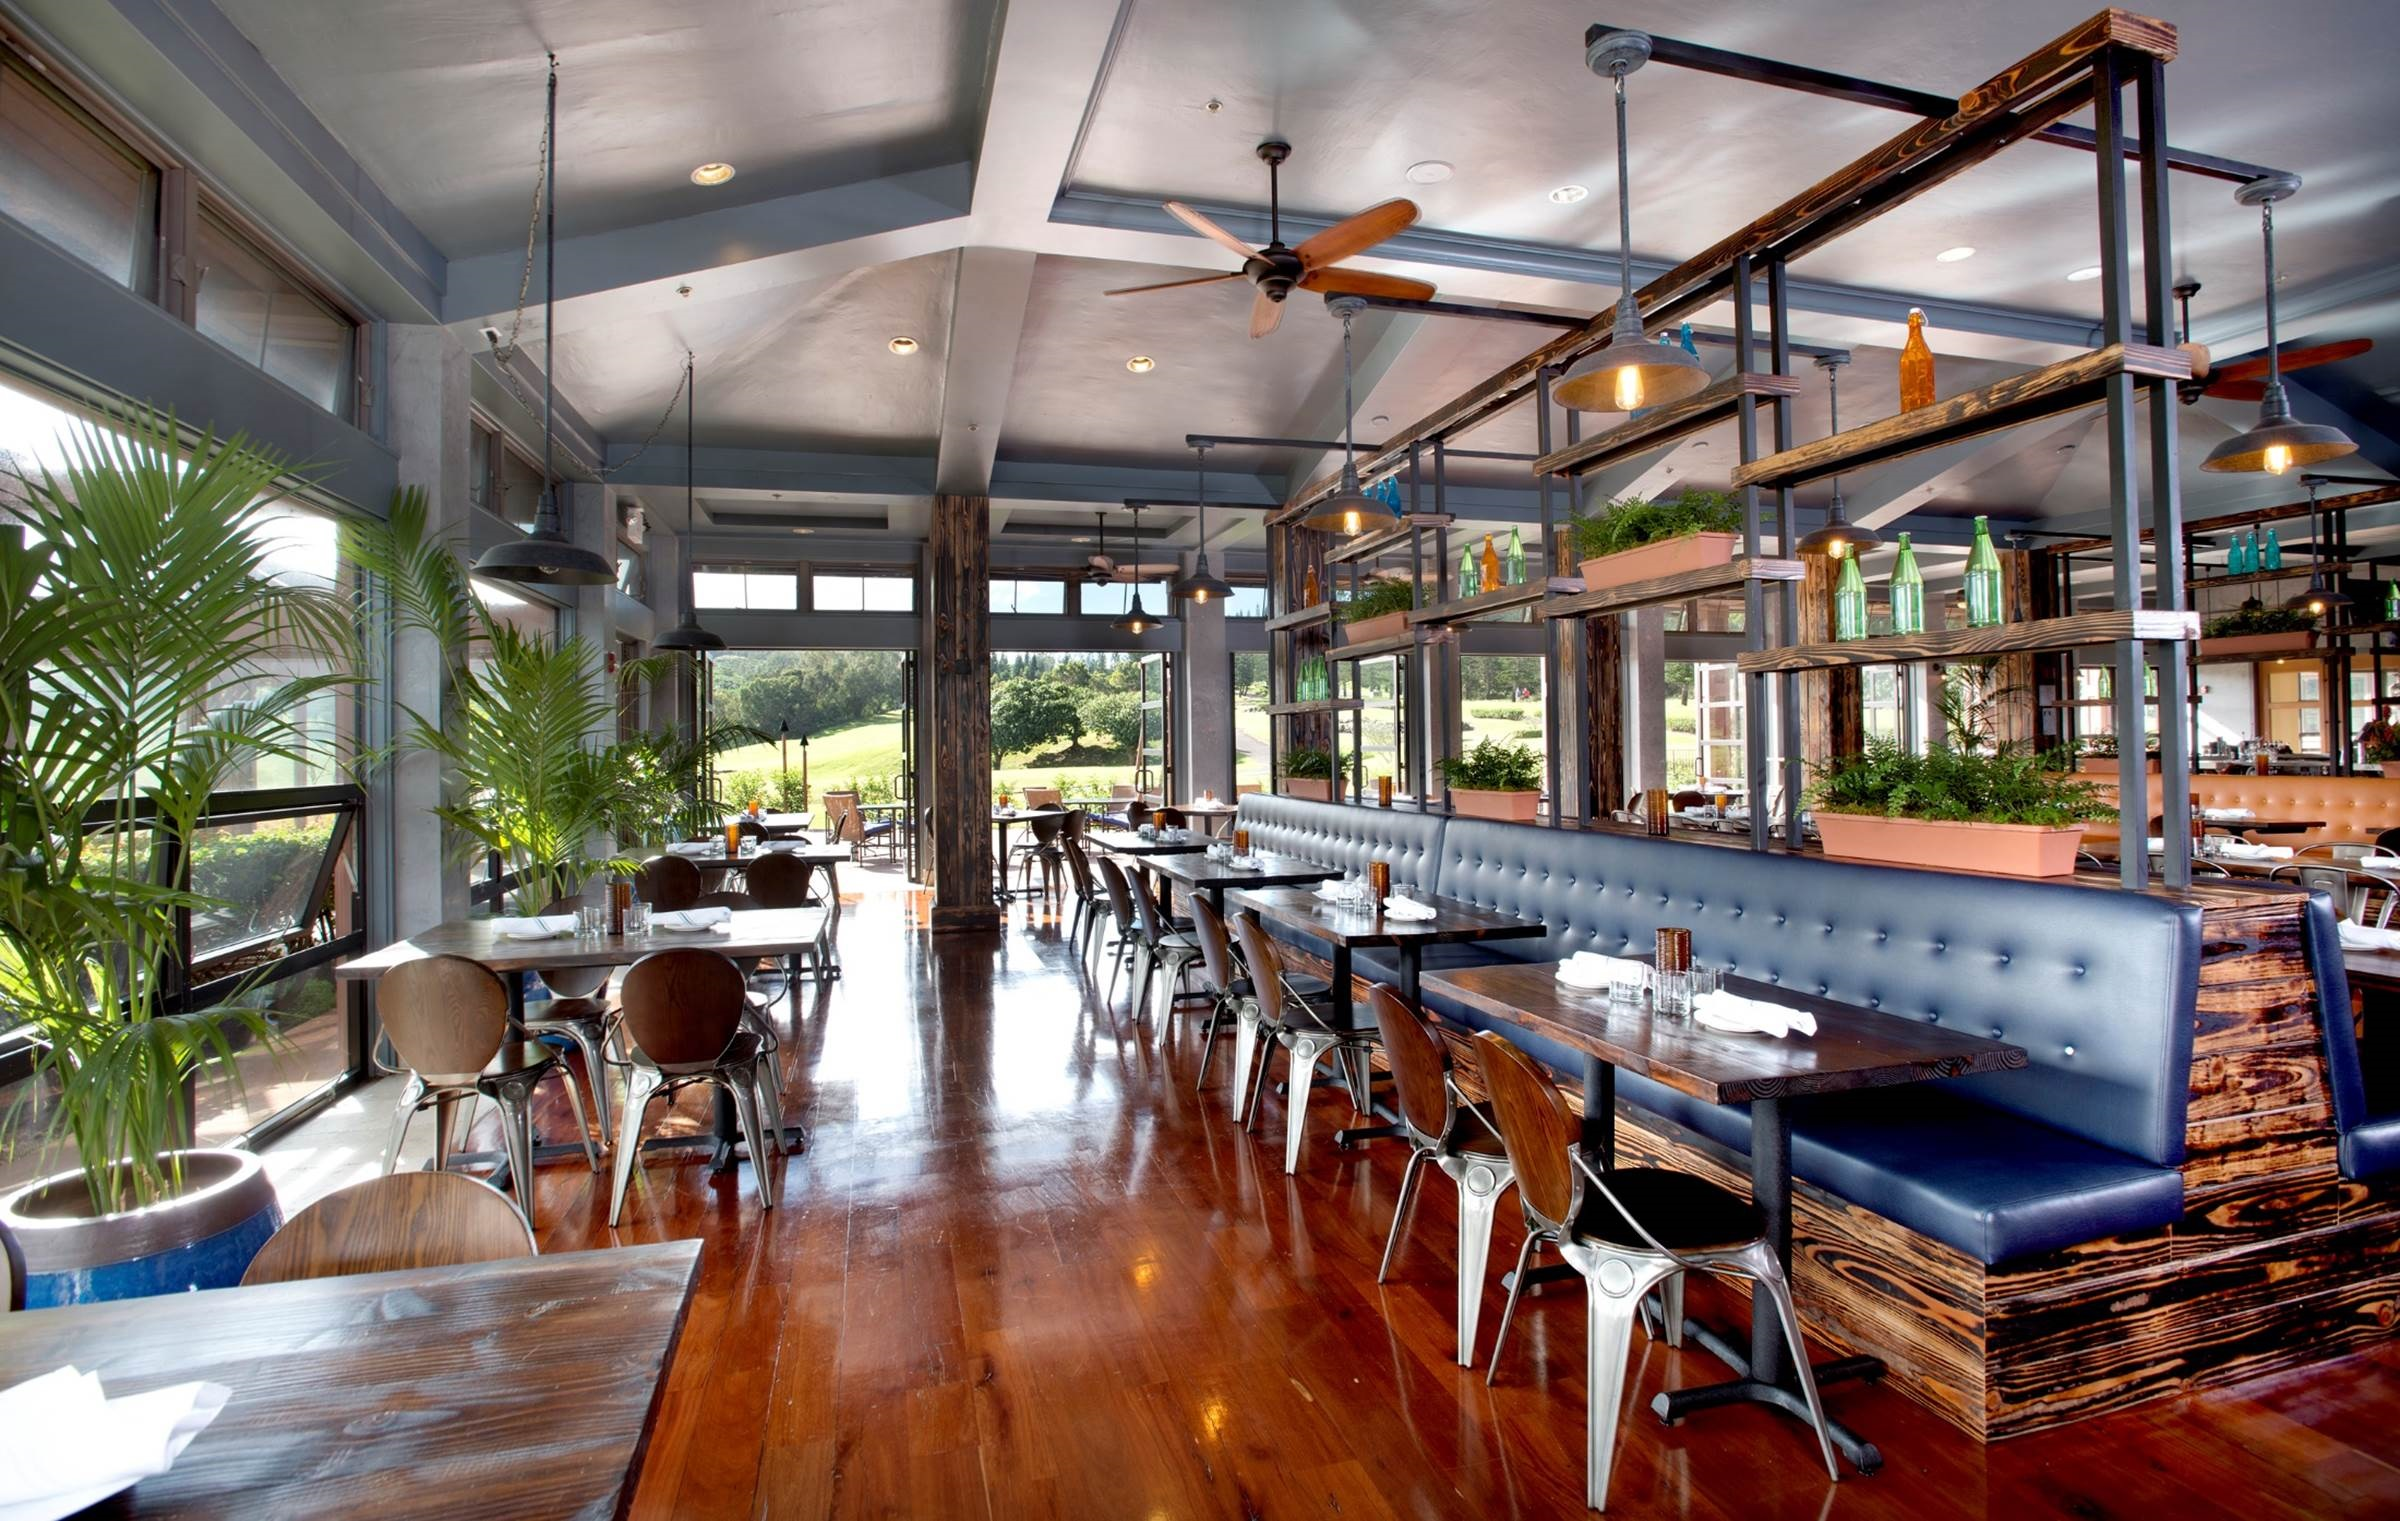 Taverna Restaurant in Kapalua To Hold Grand Reopening March 27